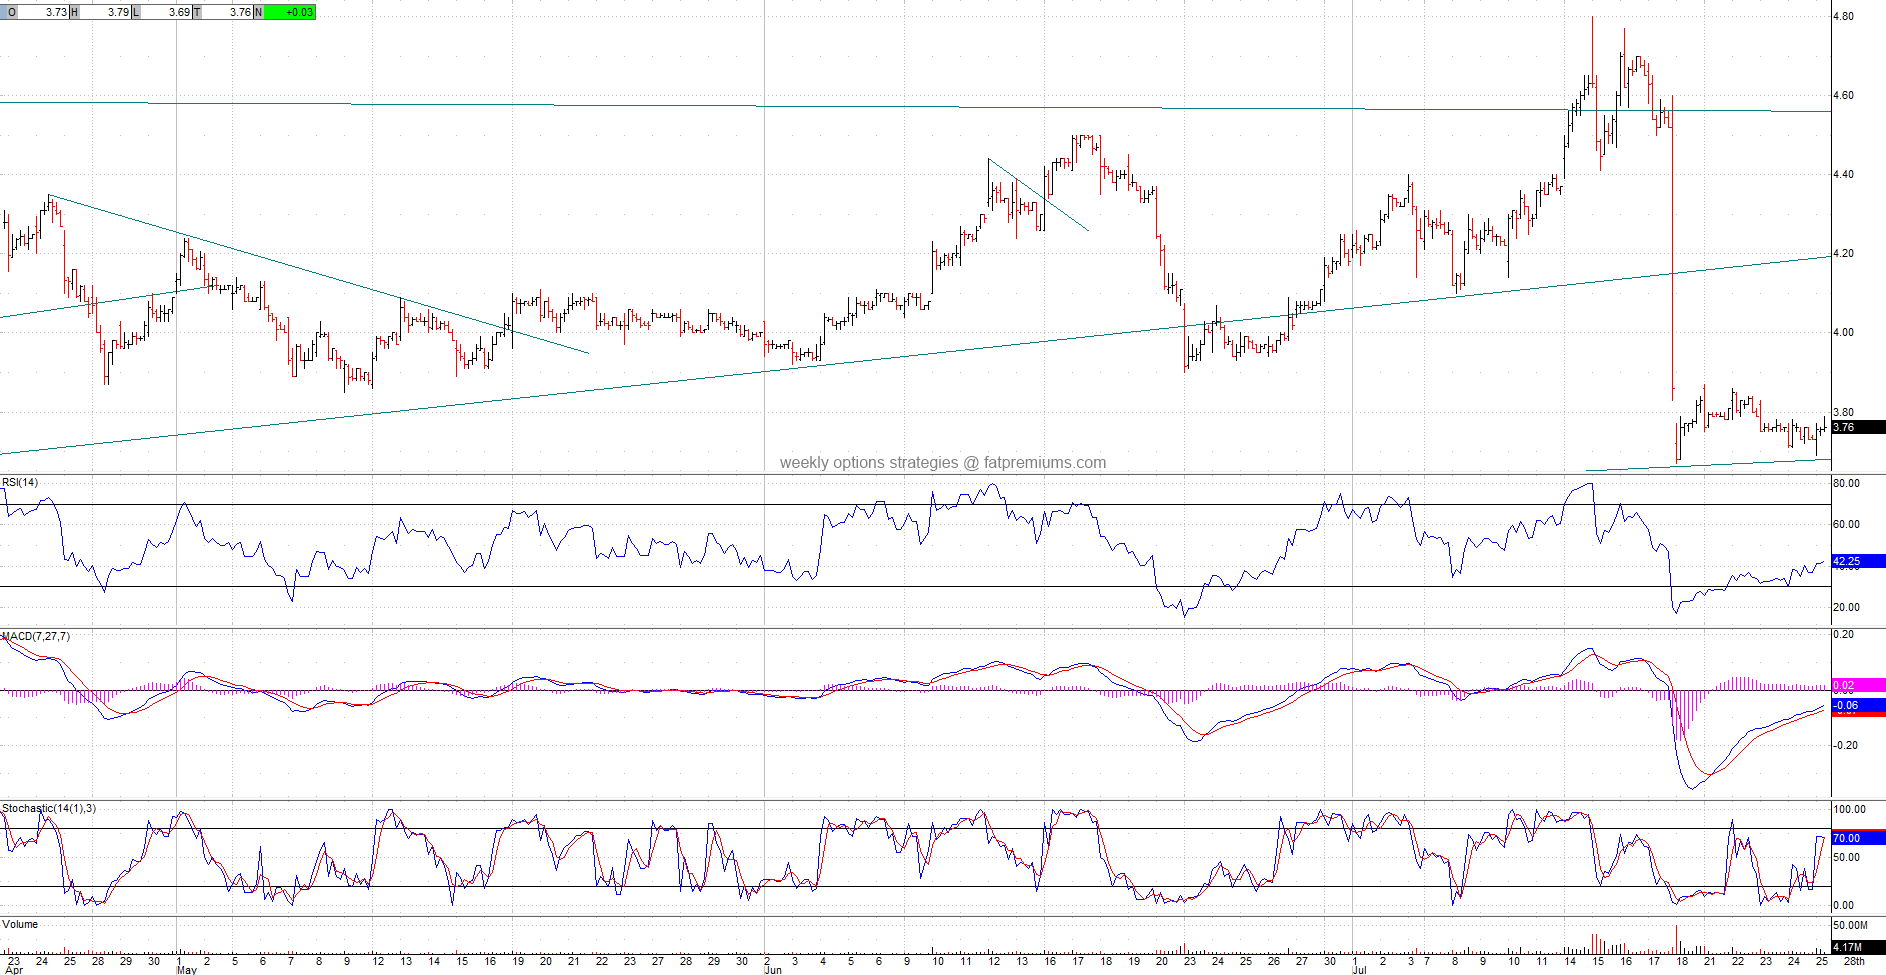 Advanced Micro Devices (NYSE:AMD) Hourly Chart (2014-07-25) Bullish